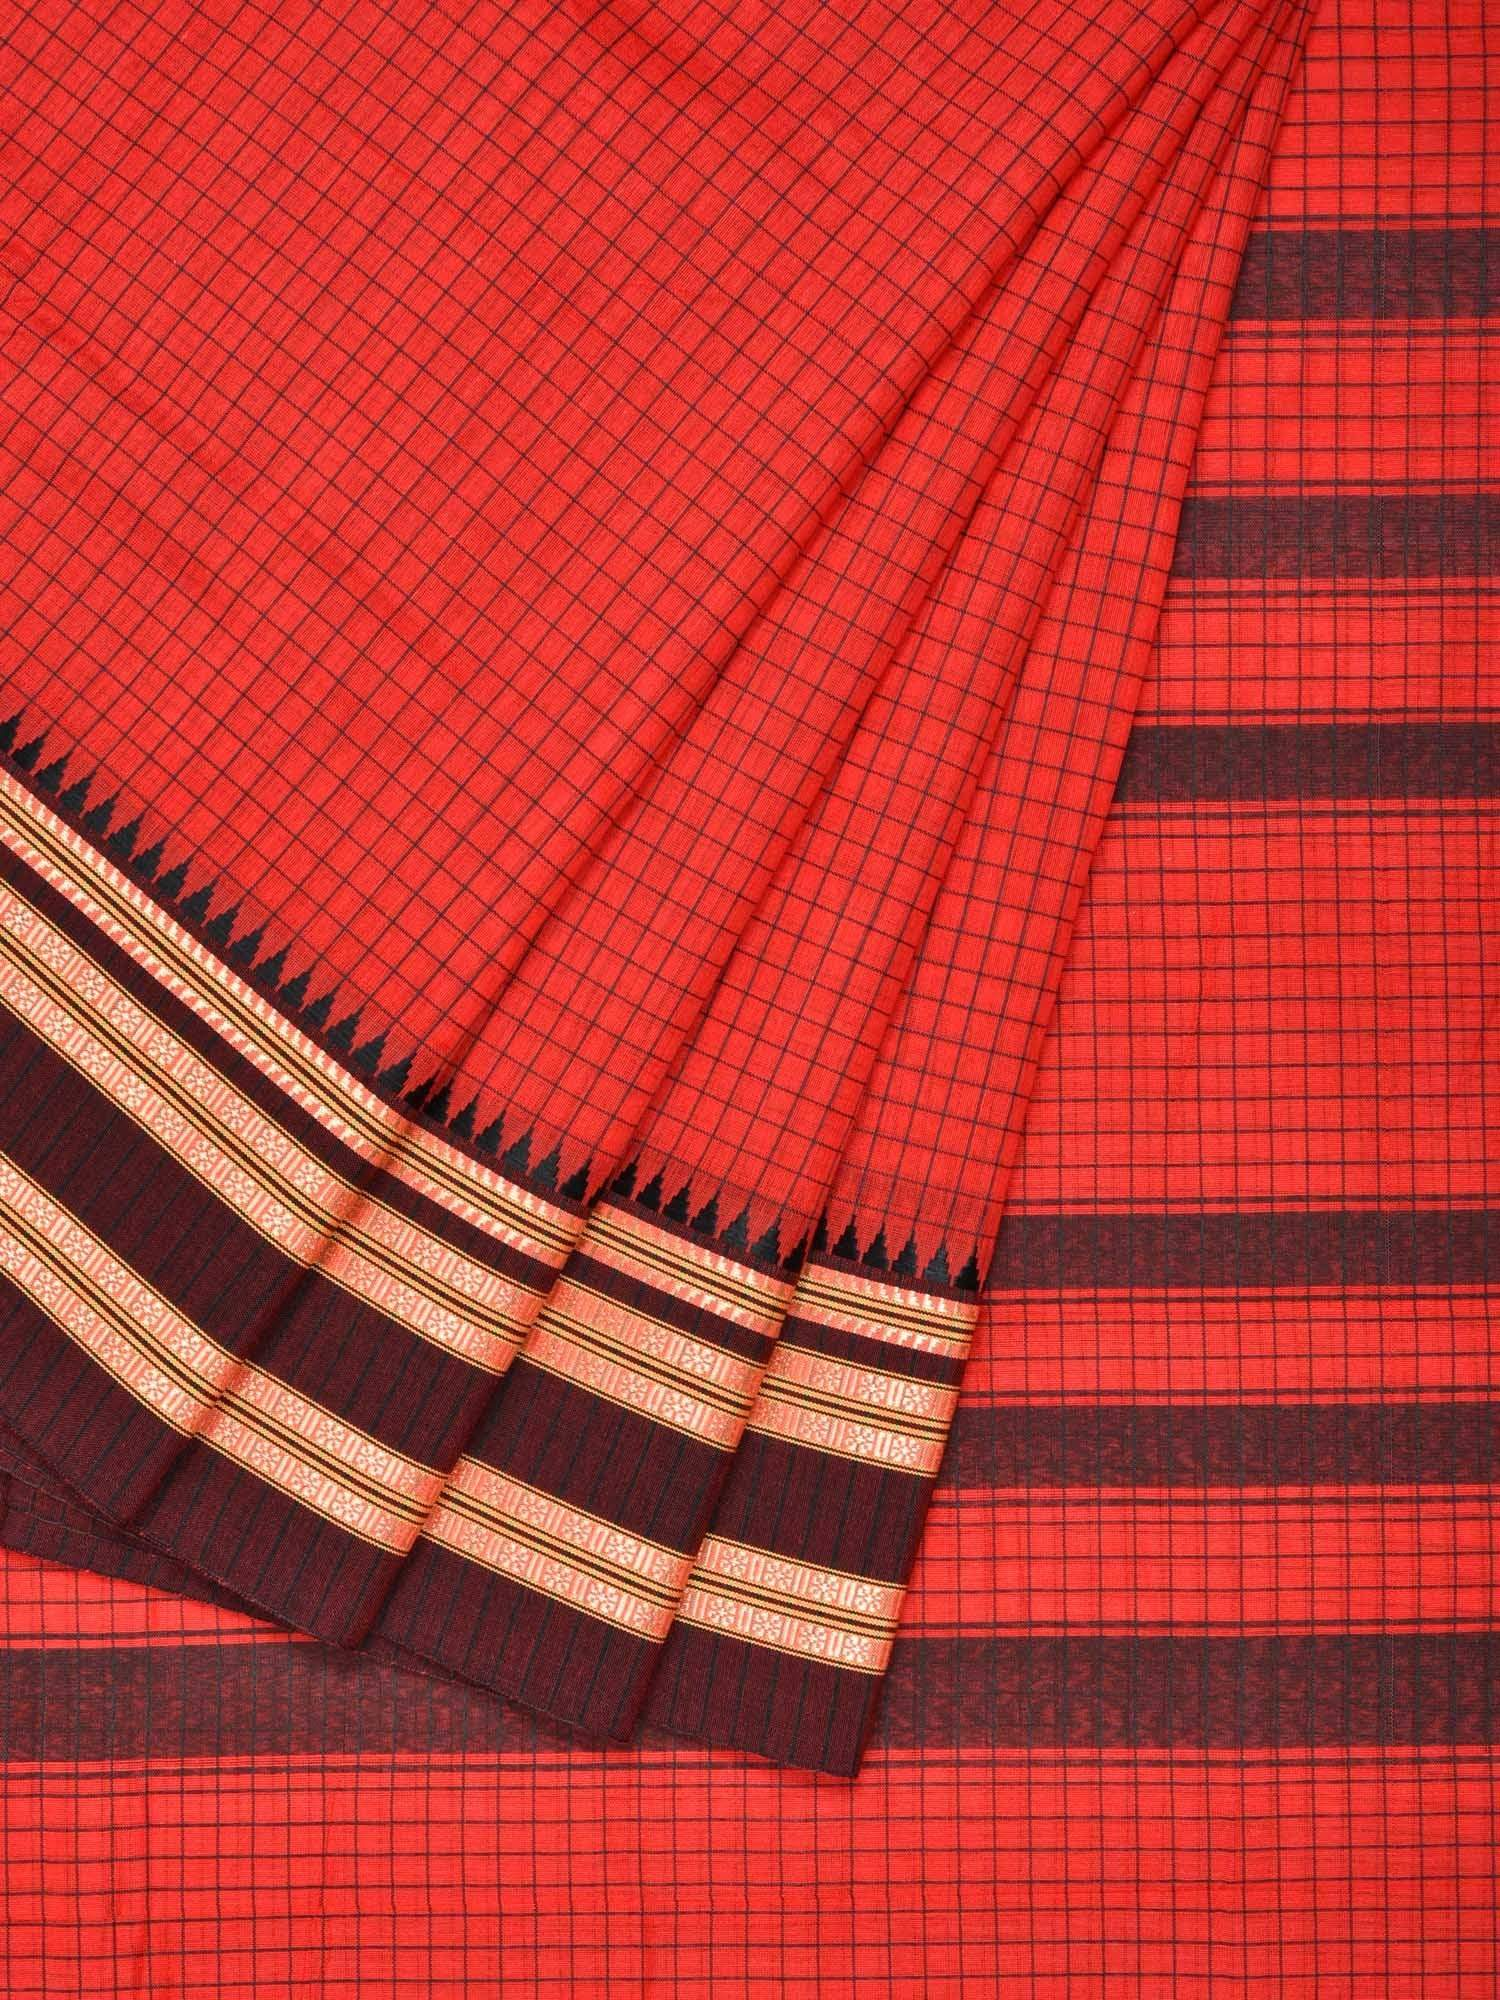 Red Narayanpet Cotton Handloom Saree with Checks and Traditional Border Design No Blouse np0220